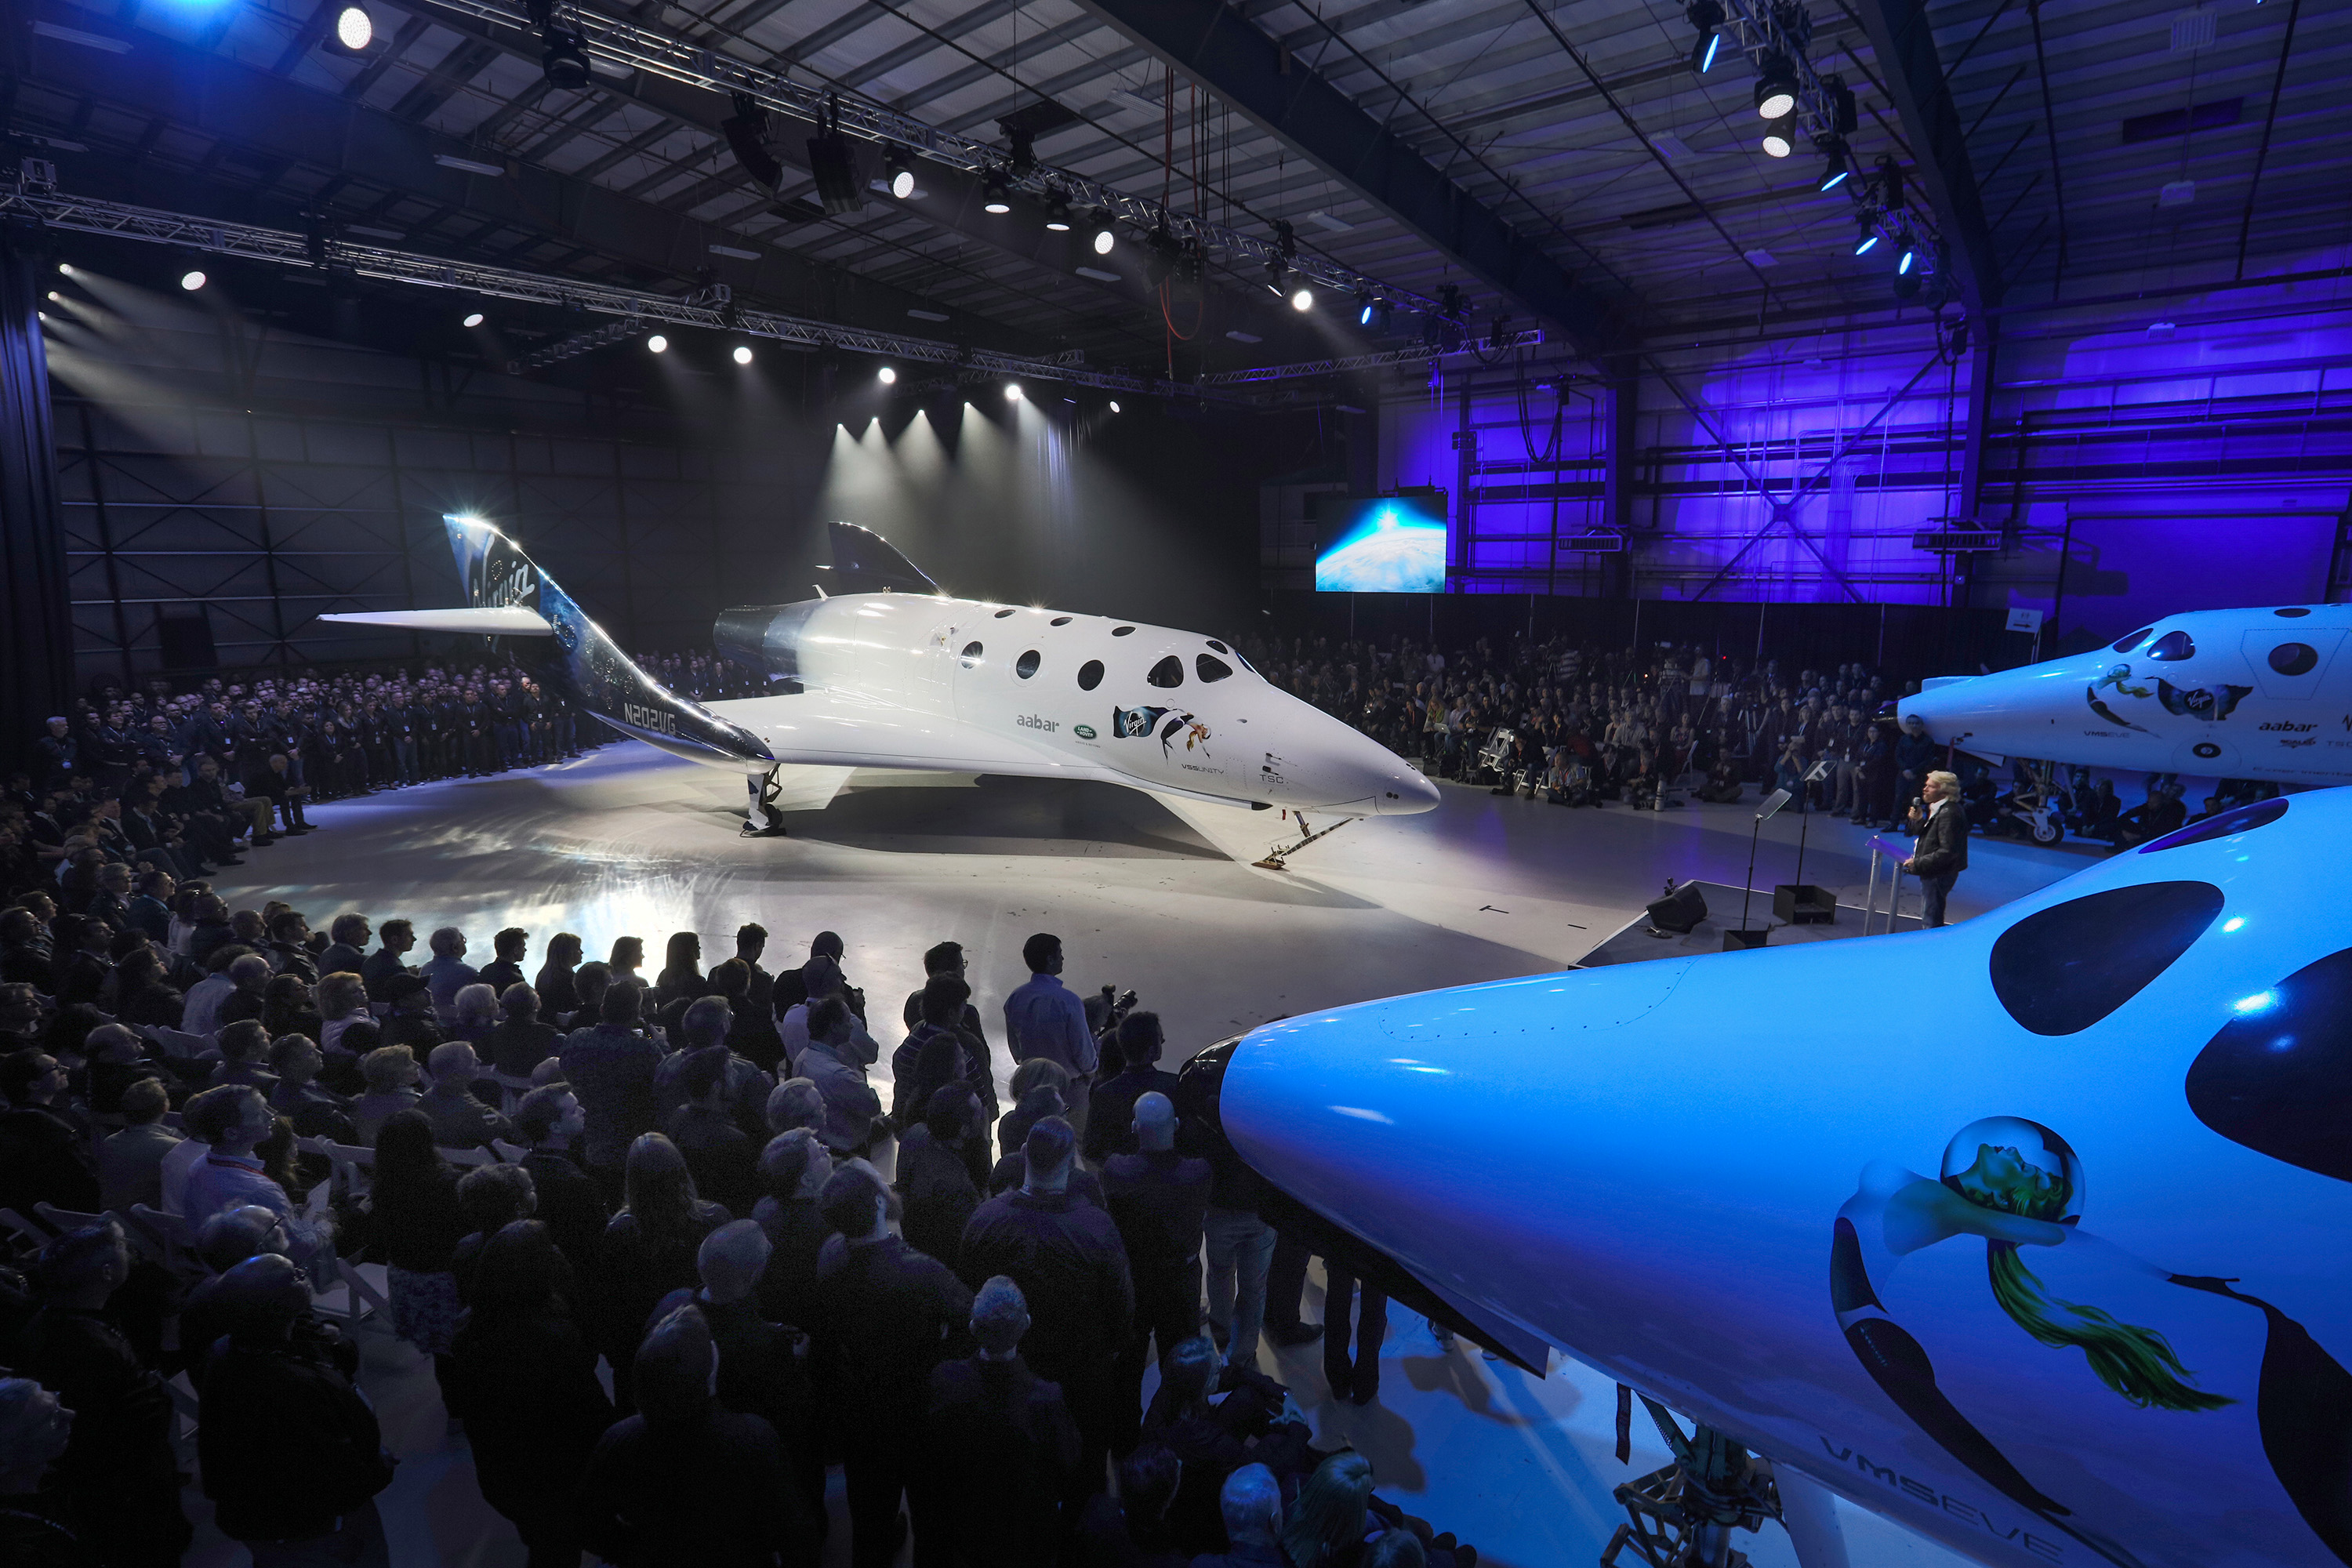 Virgin Spaceship Unity is unveiled in Mojave, California, Friday February 19th, 2016. VSS Unity is the first vehicle to be manufactured by The Spaceship Company, Virgin Galactic's wholly owned manufacturing arm, and is the second vehicle of its design ever constructed. VSS Unity was unveiled in FAITH (Final Assembly Integration Test Hangar), the Mojave-based home of manufacturing and testing for Virgin Galactic's human space flight program. VSS Unity featured a new silver and white livery and was guided into position by one of the company's support Range Rovers, provided by its exclusive automotive partner Land Rover...